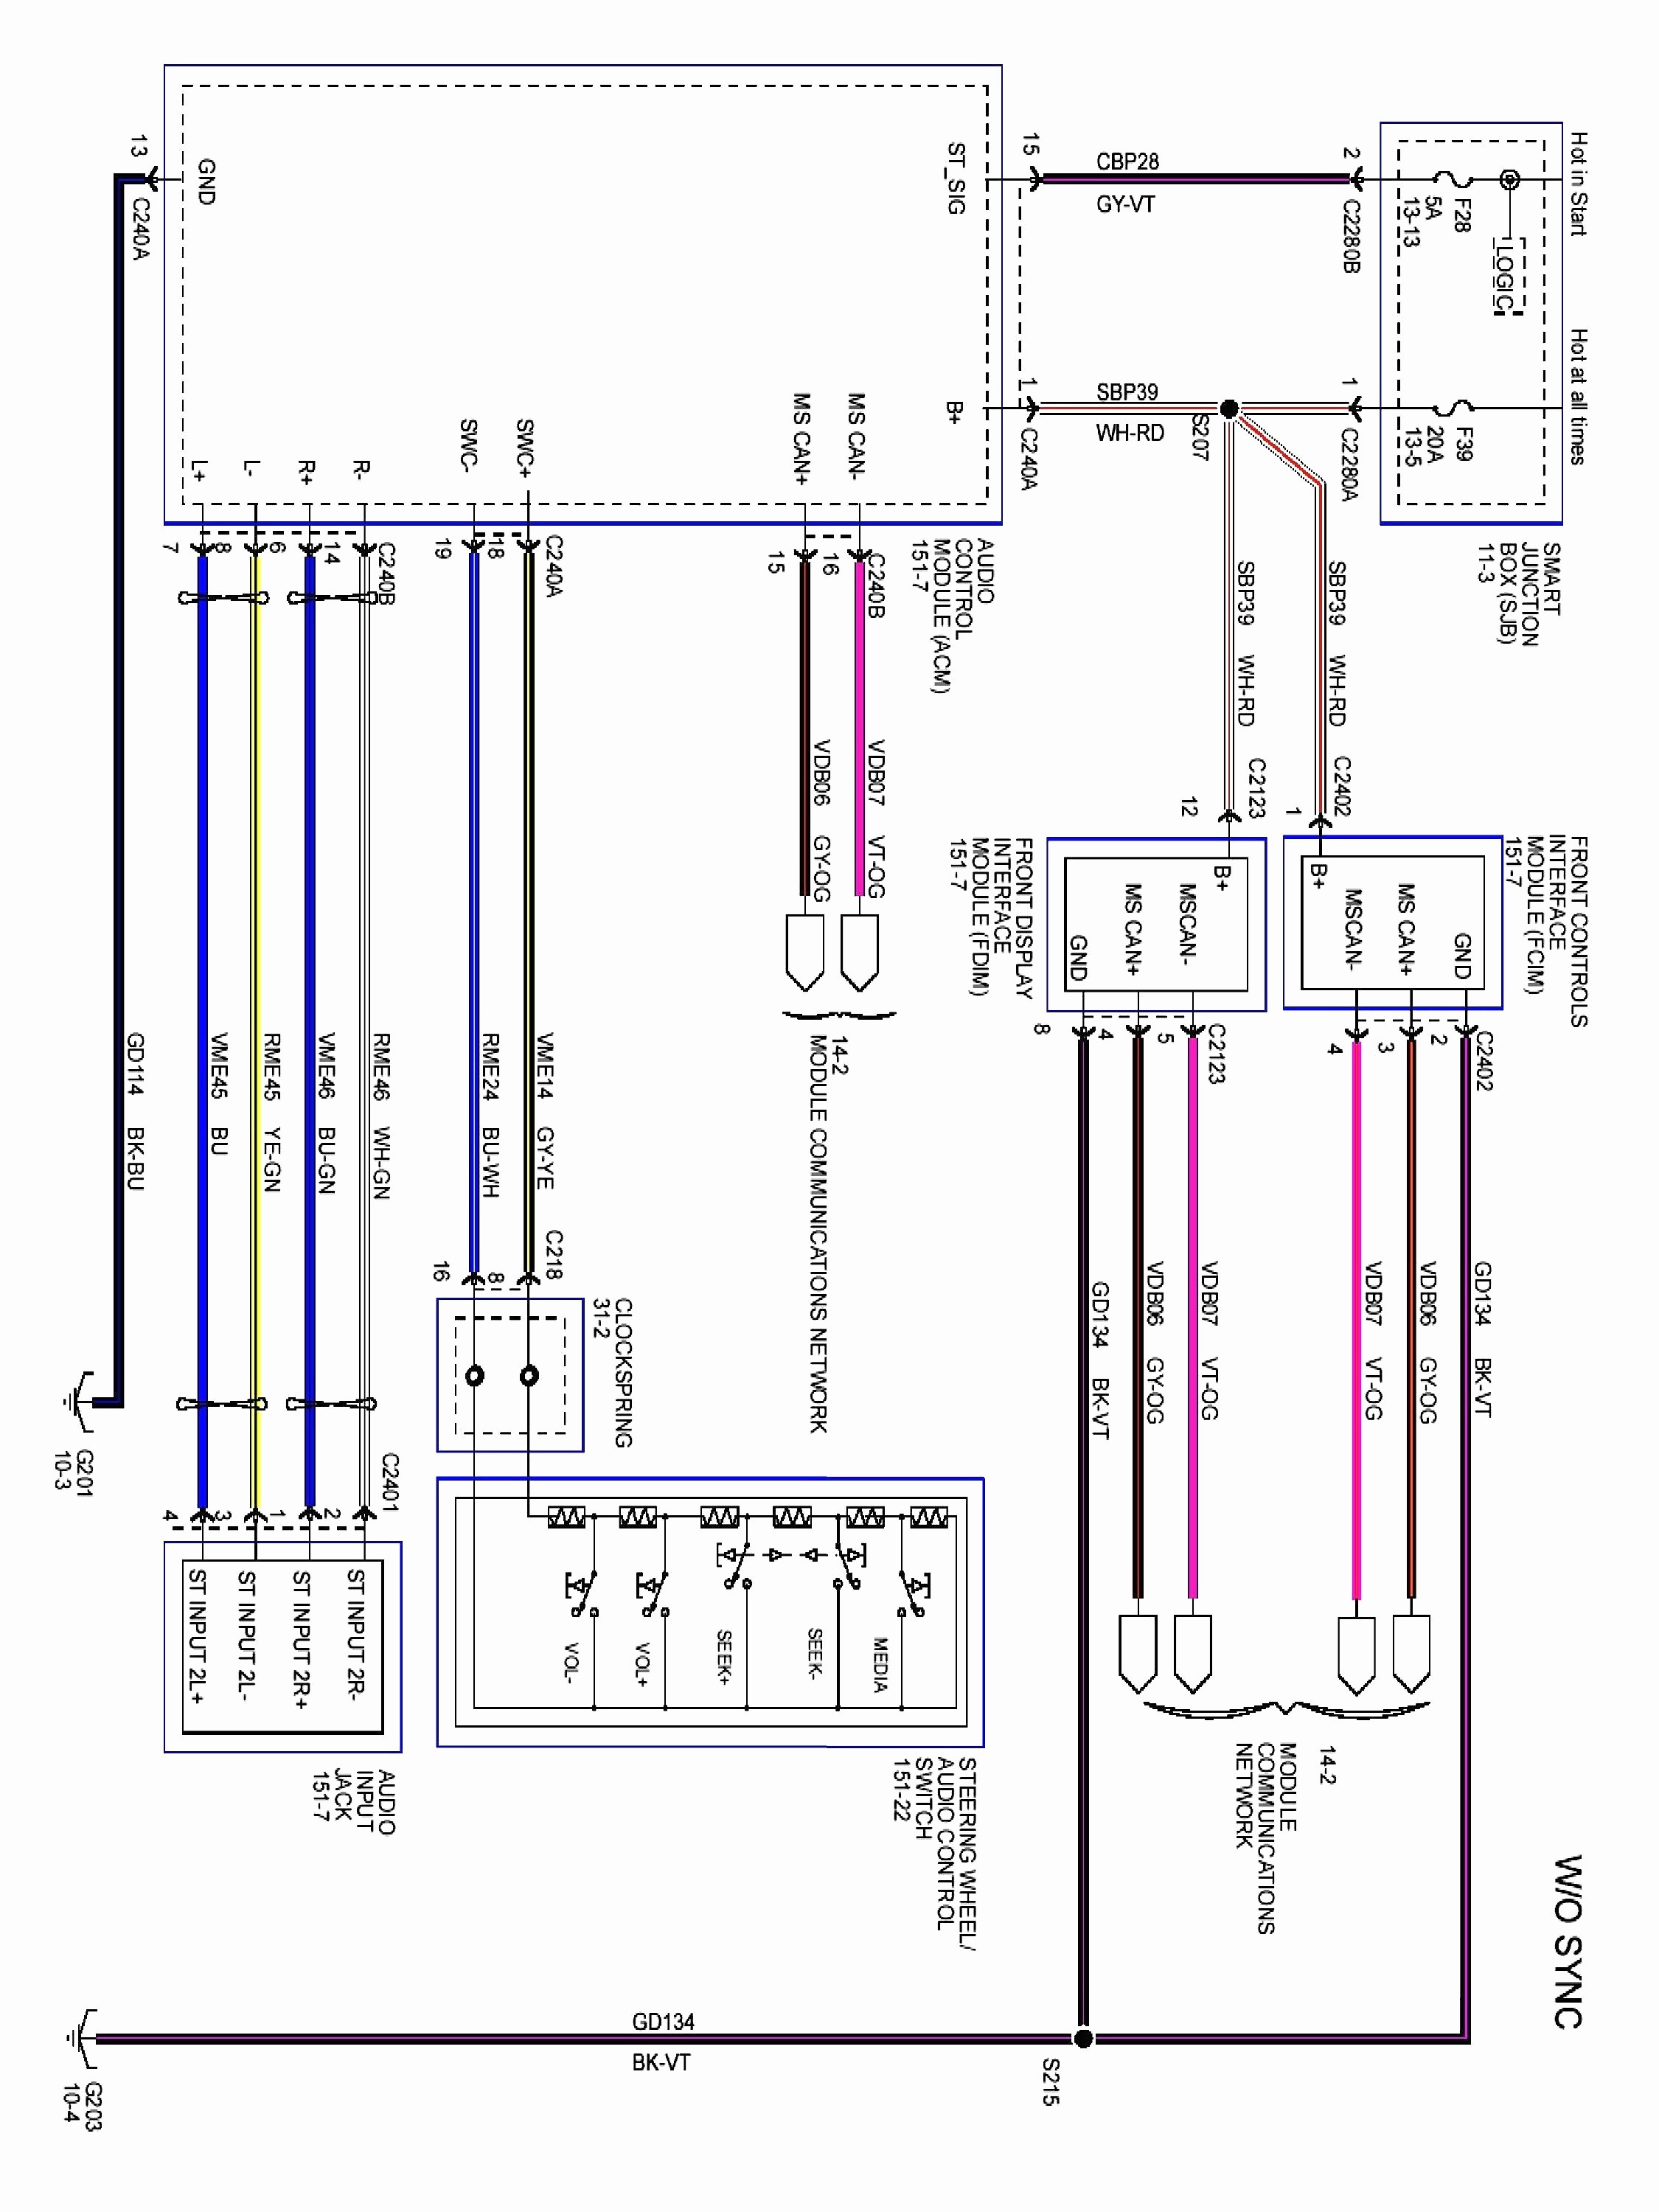 car sound wiring diagram Download-Wiring Diagram For Amplifier Car Stereo Best Amplifier Wiring Diagram Inspirational Car Stereo Wiring Diagrams 0d 16-n